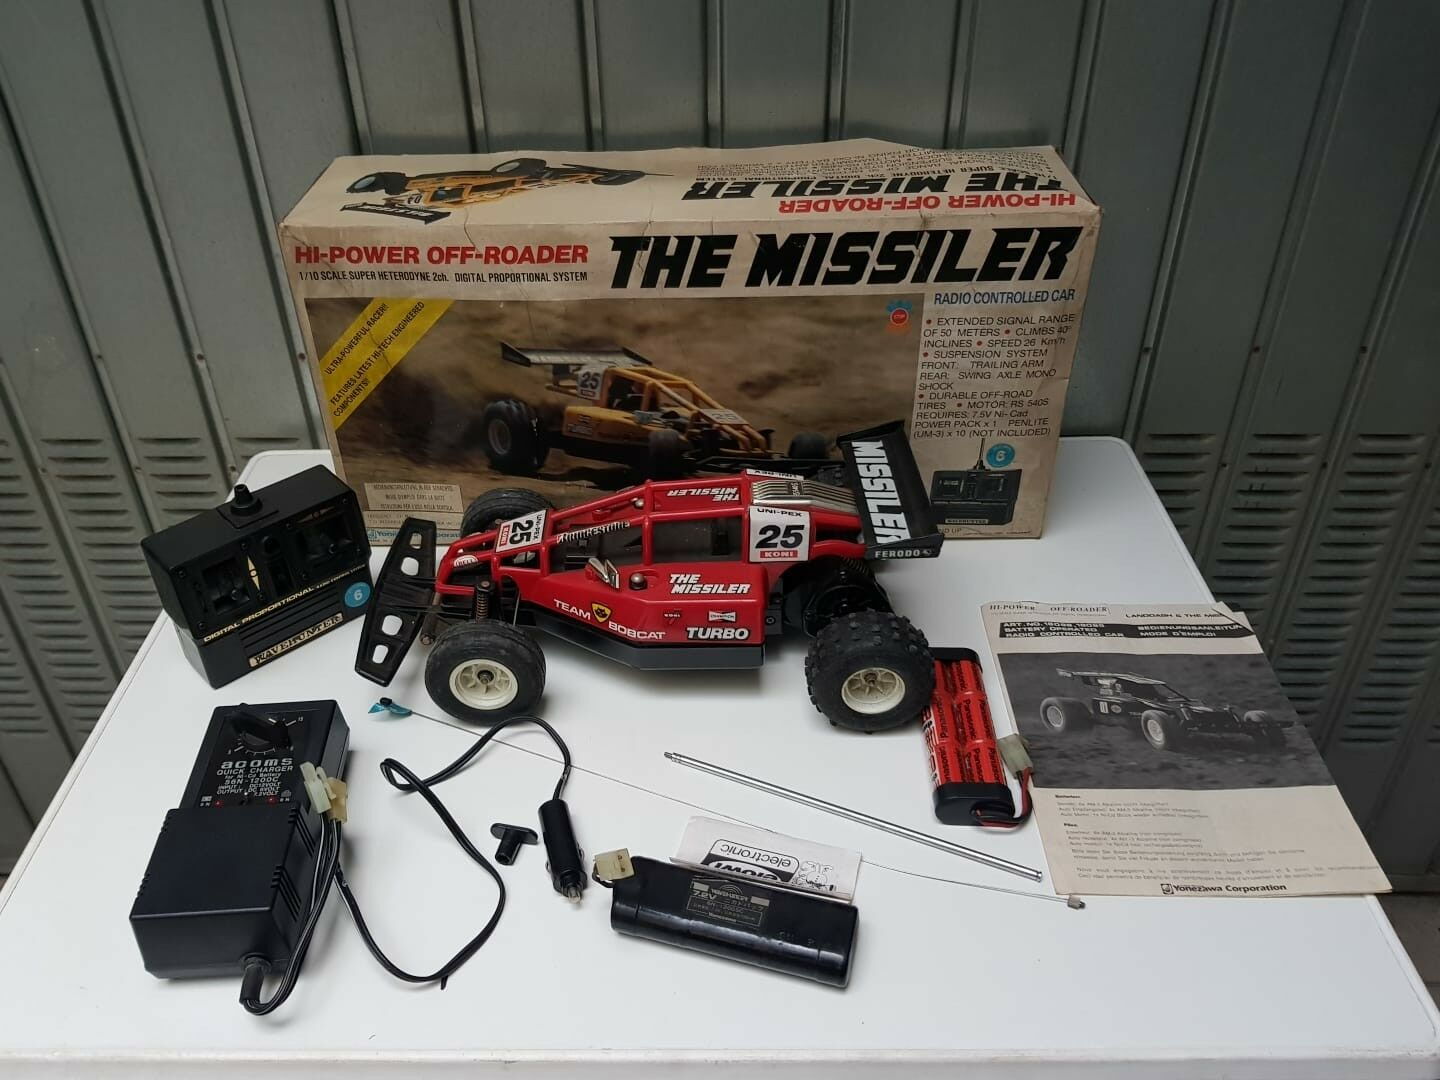 THE MISSILER NIKKO YONEZAWA 1985 RADIO CONTROLL TOYS VINTAGE HI POWER OFF ROADER